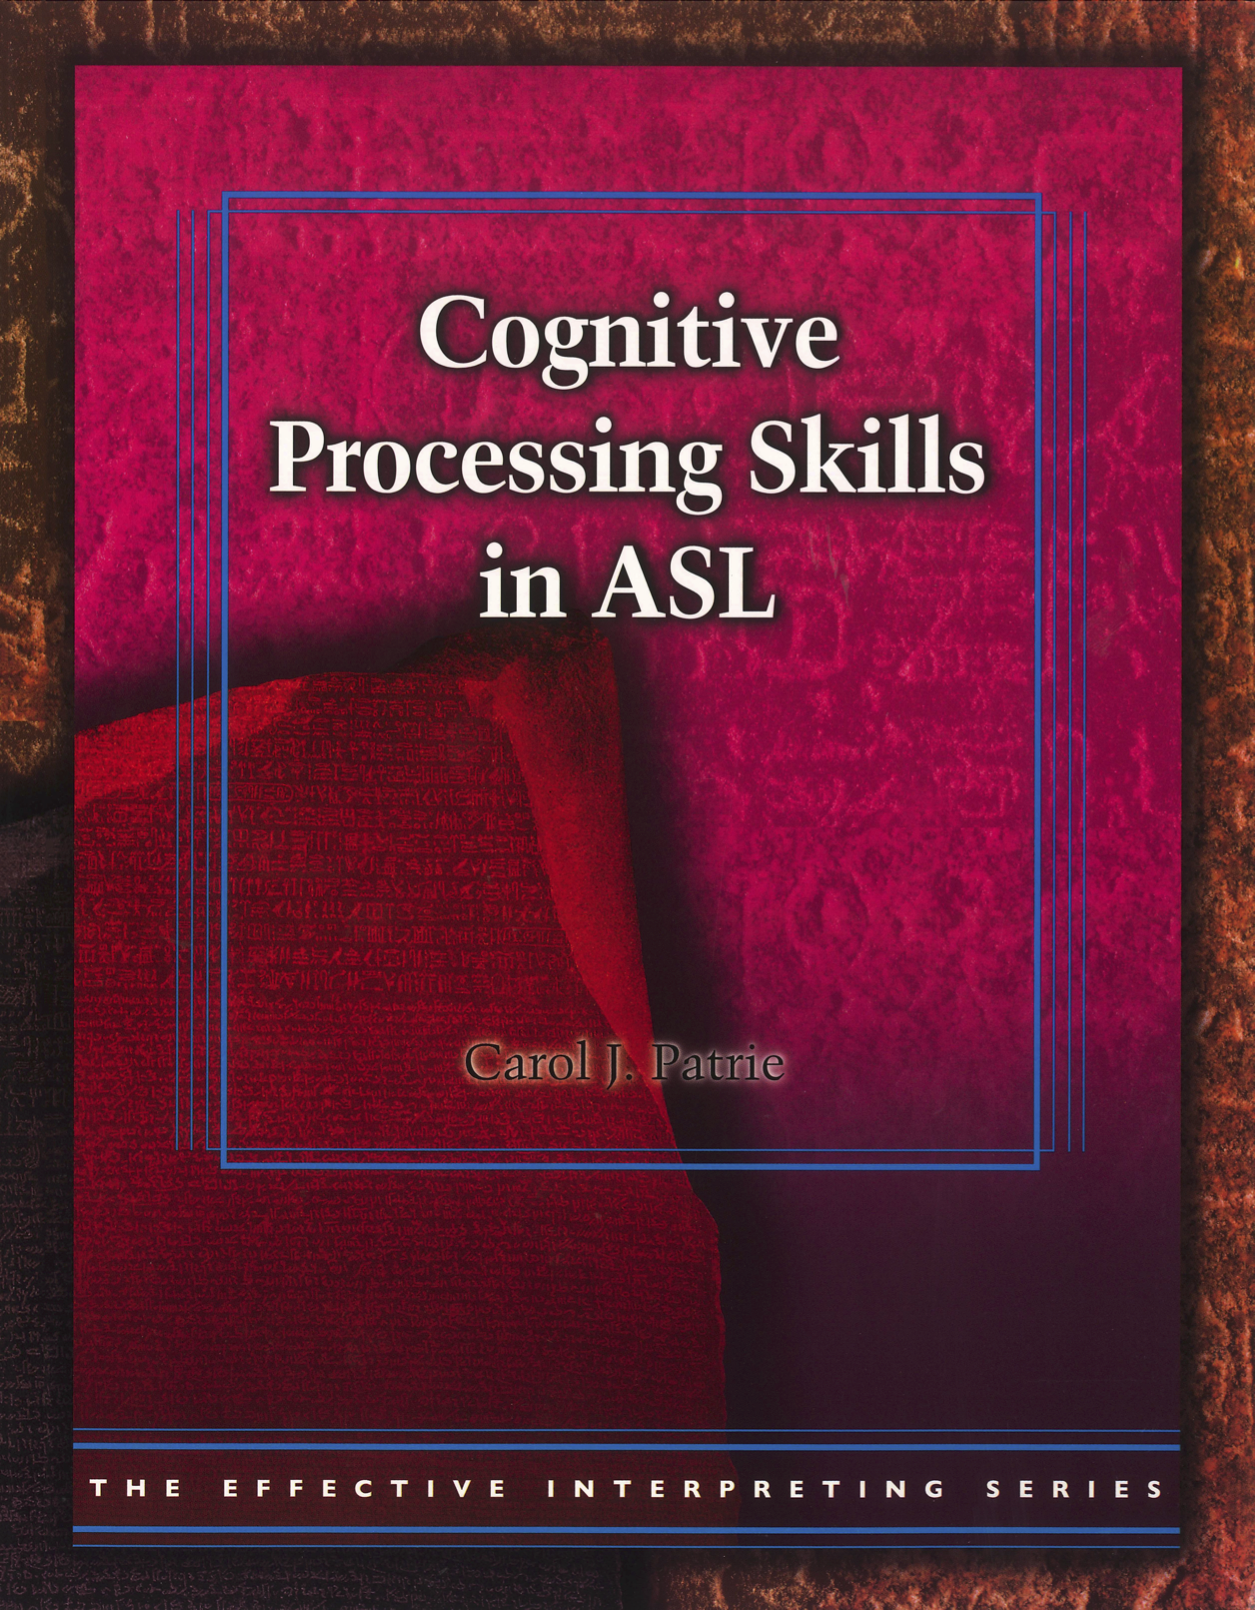 Cognitive Processing Skills in ASL